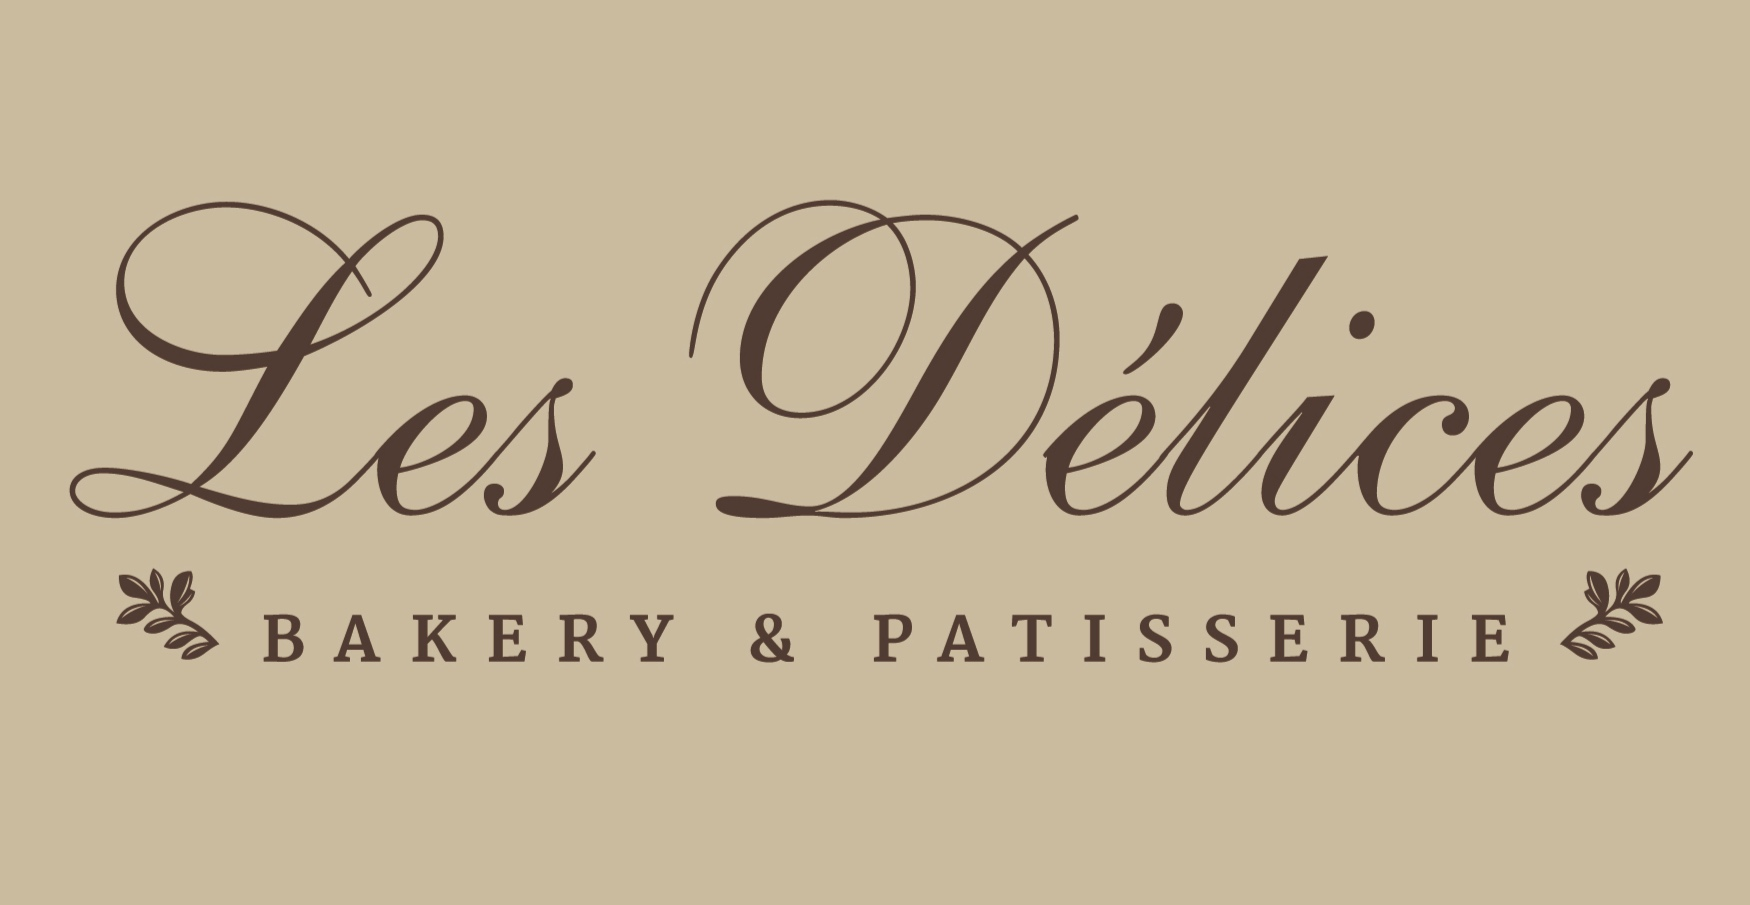 Les+Delices+Bakery.jpg